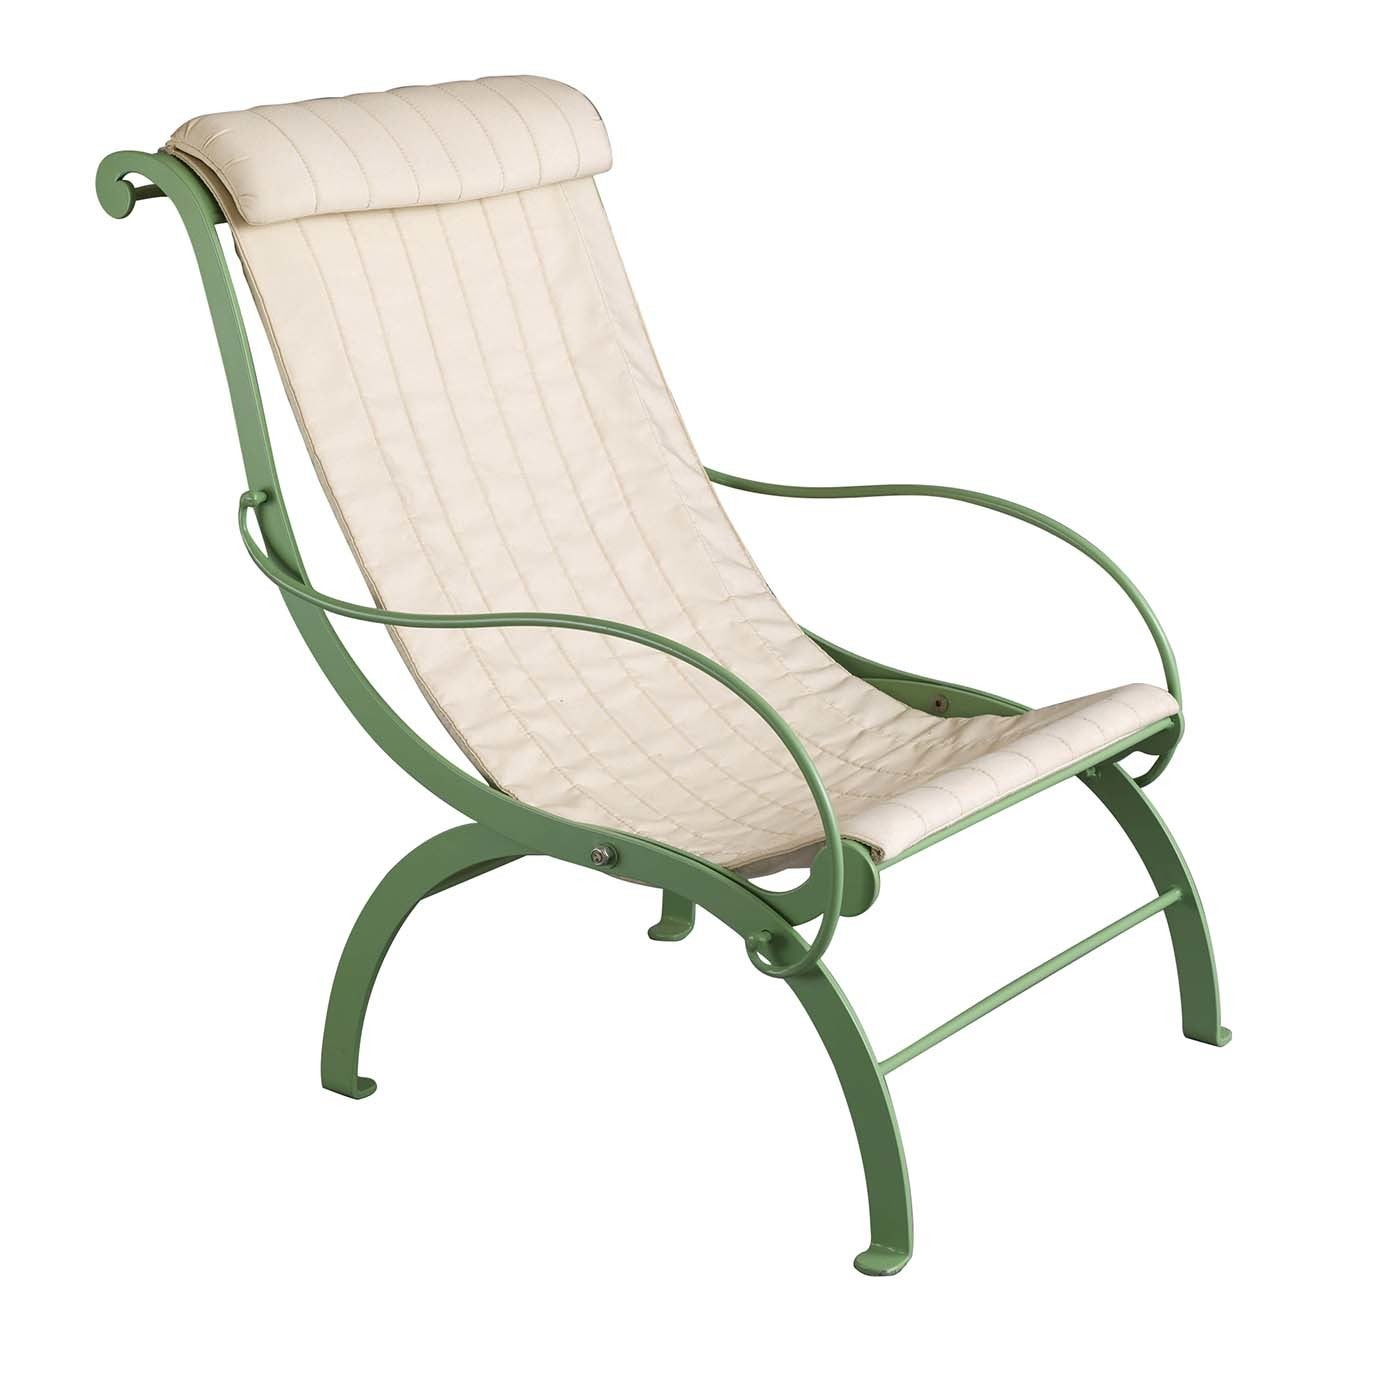 Riviera Outdoor Armchair by Officina Ciani